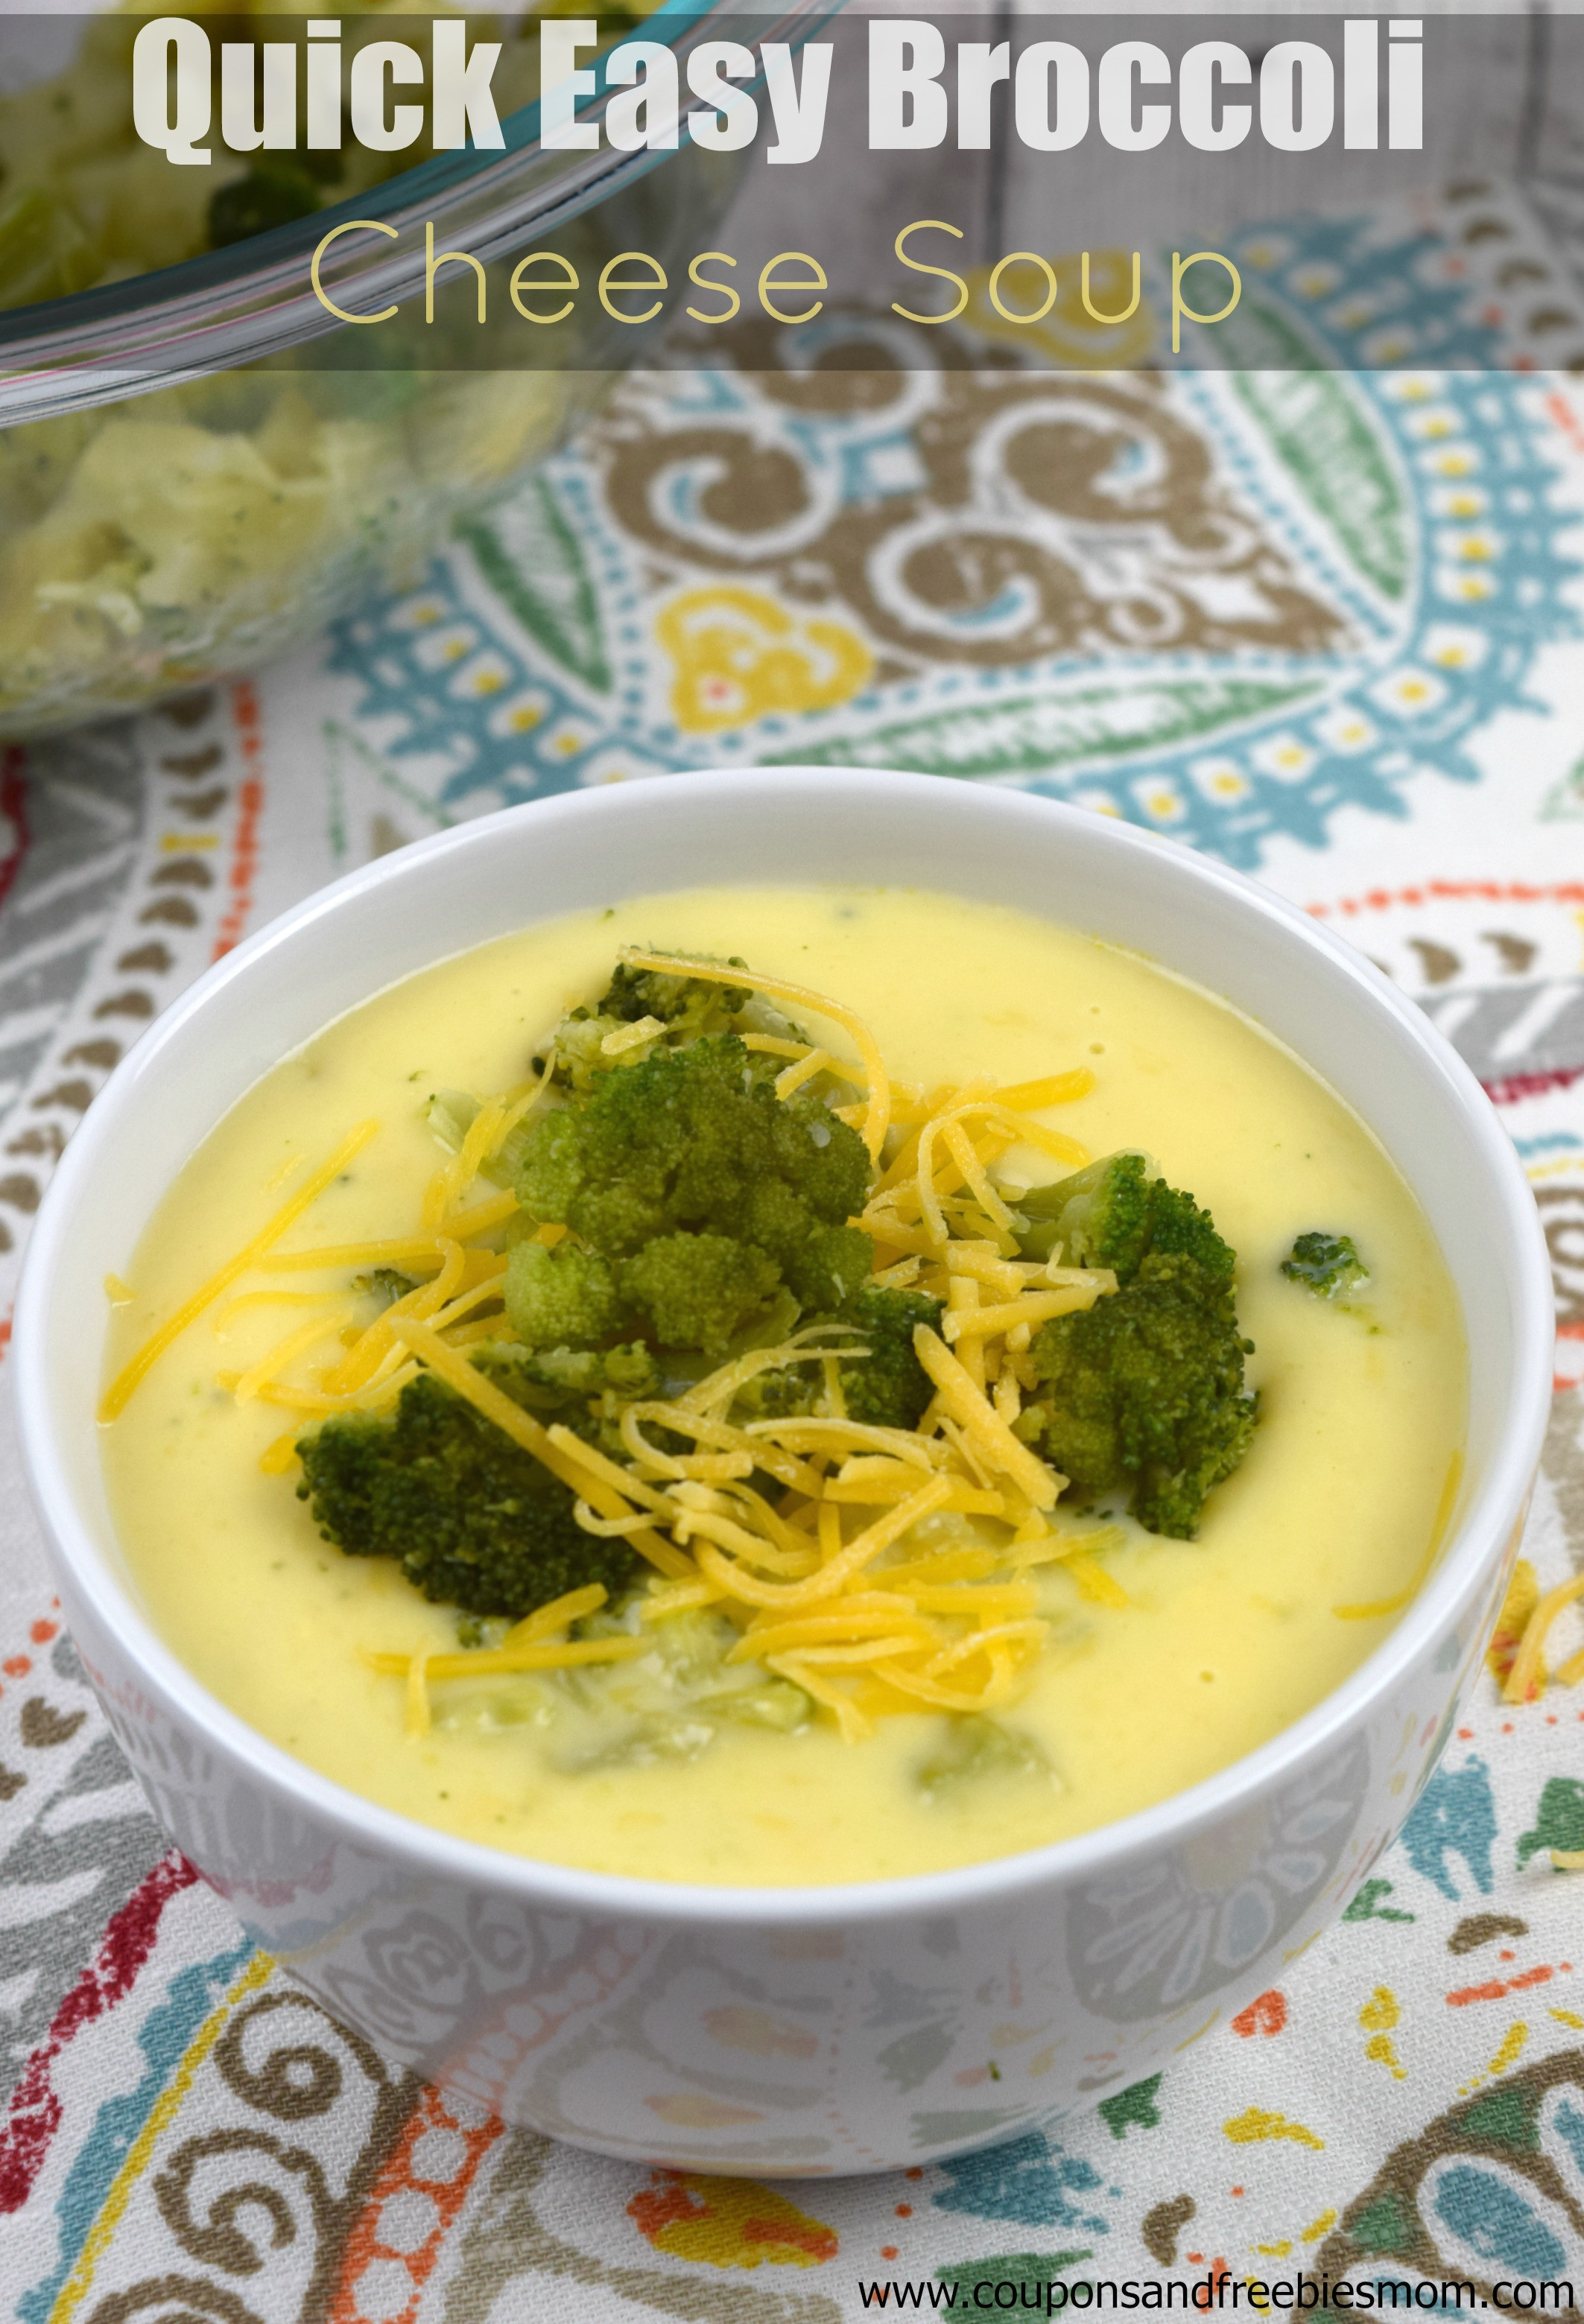 Easy Broccoli Soup  Quick Easy Broccoli Cheese Soup